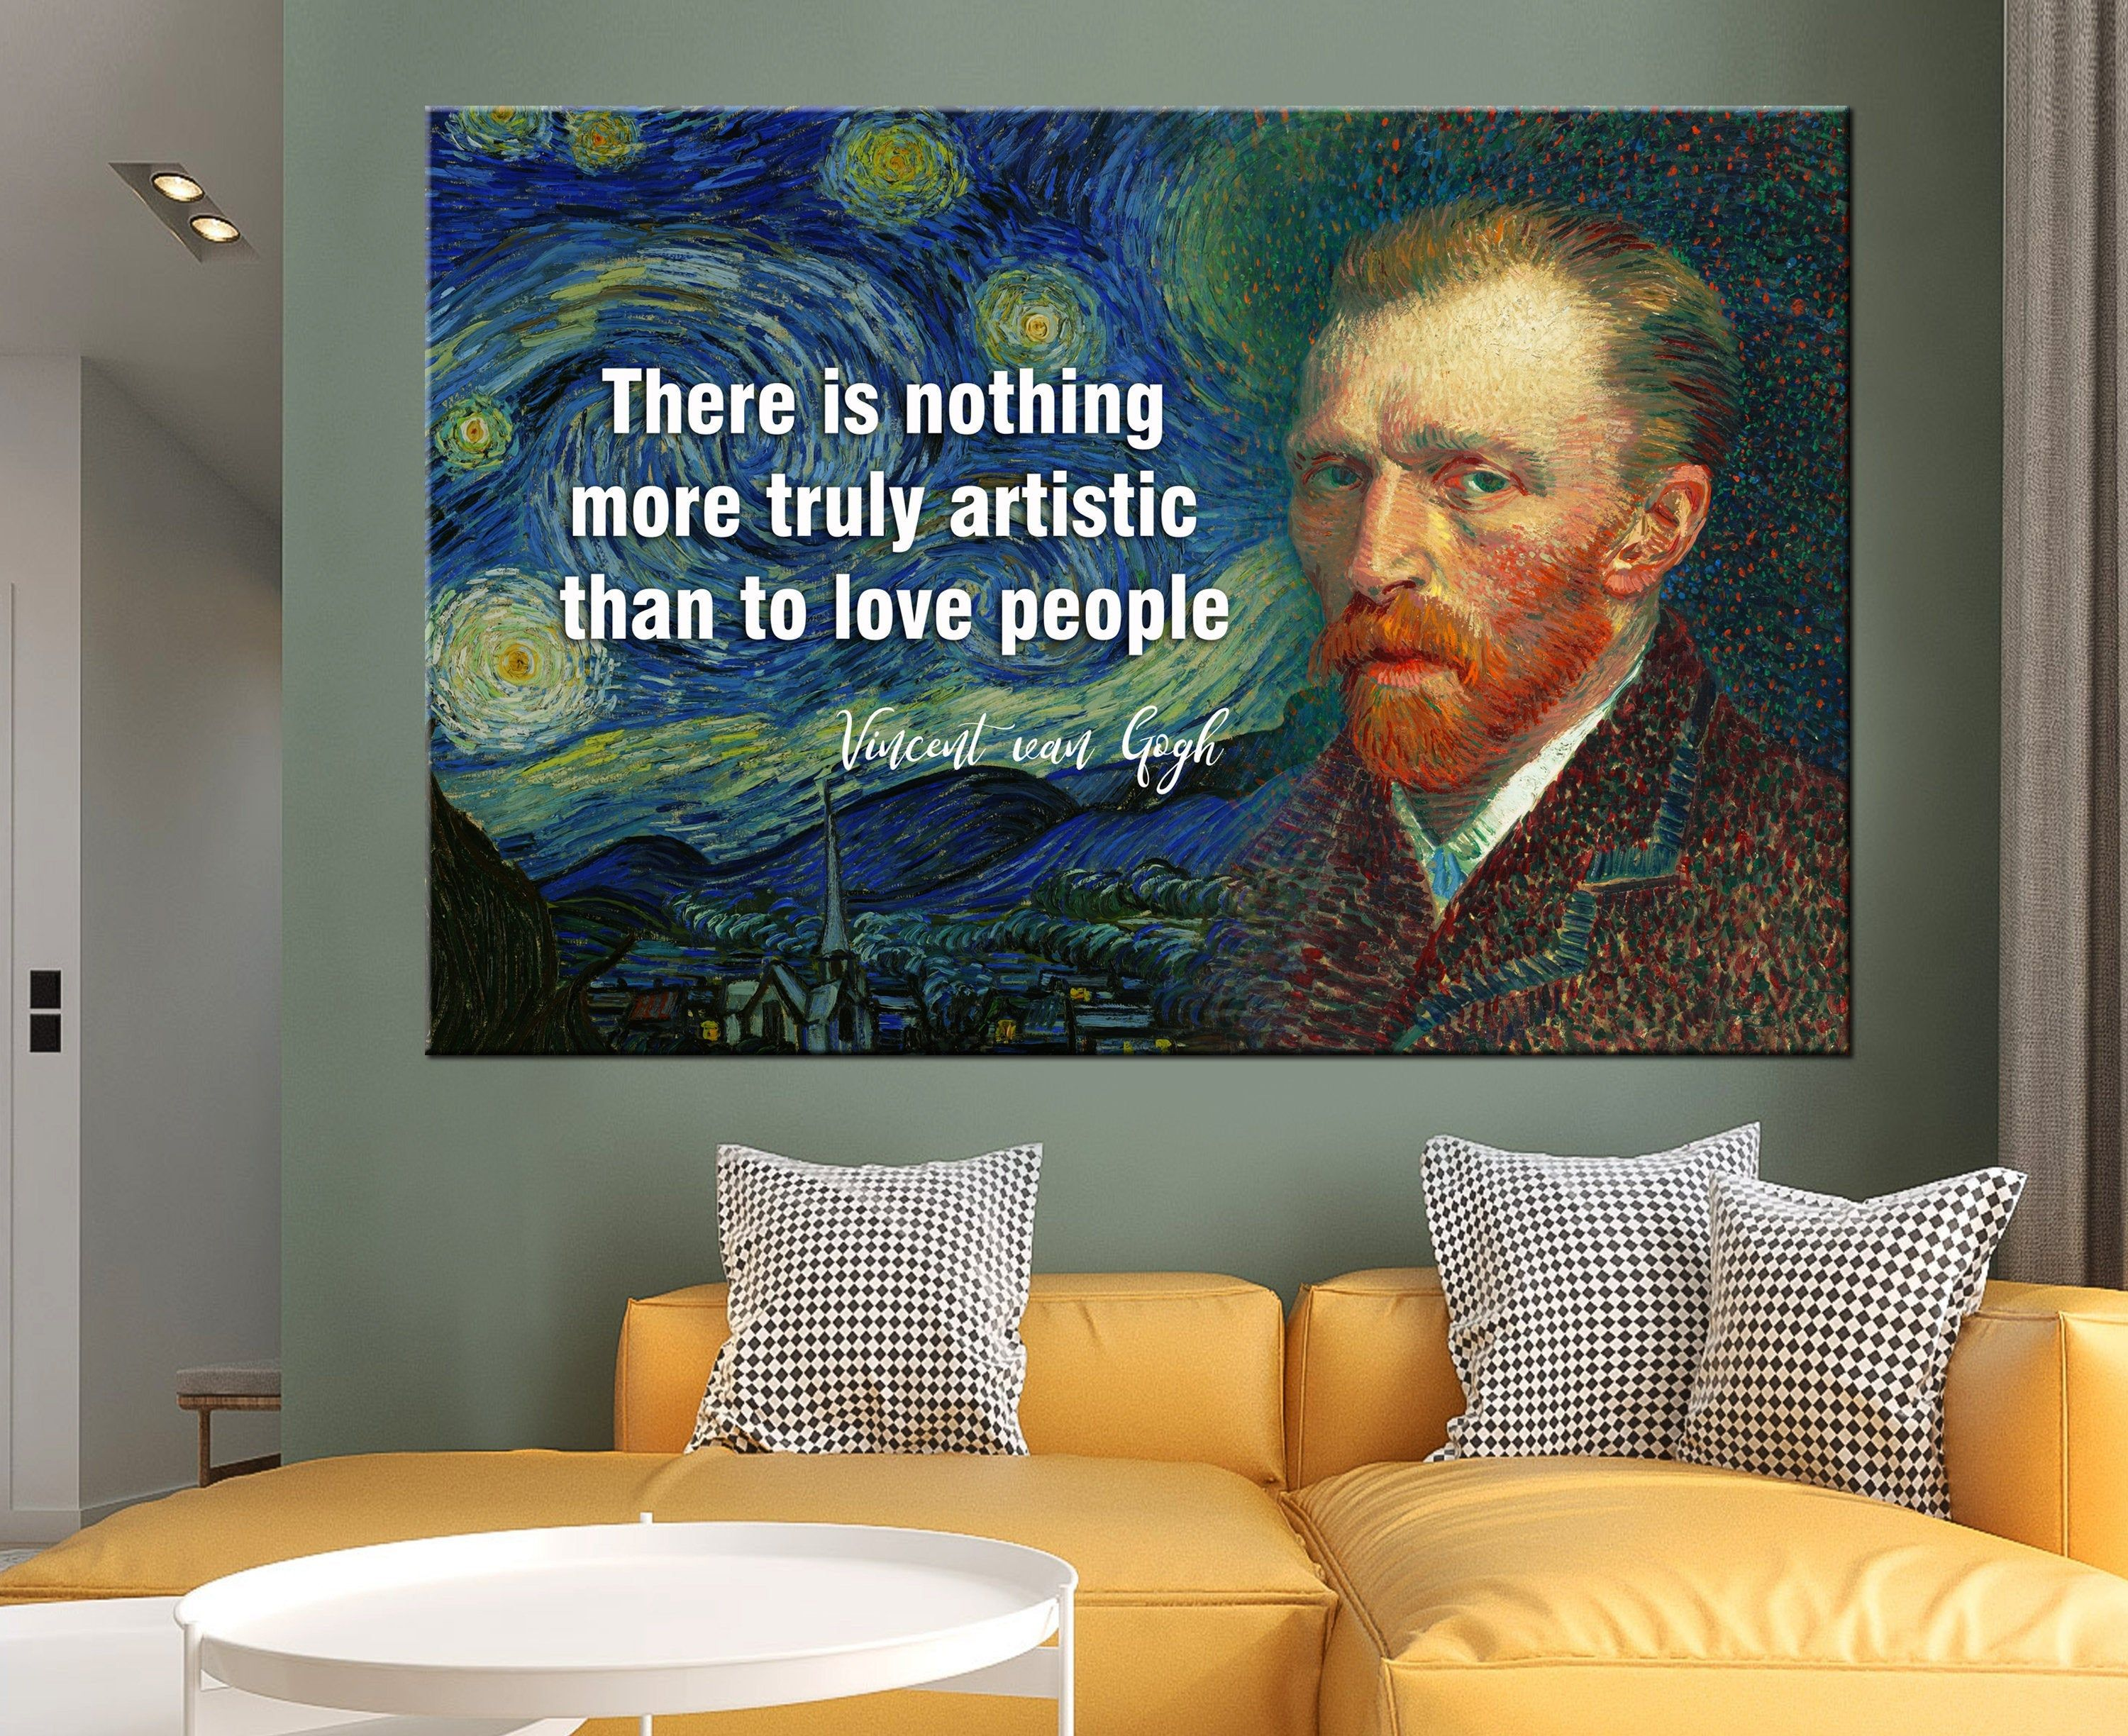 Vincent Van Gogh Wall Art Motivation Print Celebrity Decor Etsy In 2020 Van Gogh Wall Art Custom Canvas Art Wall Art